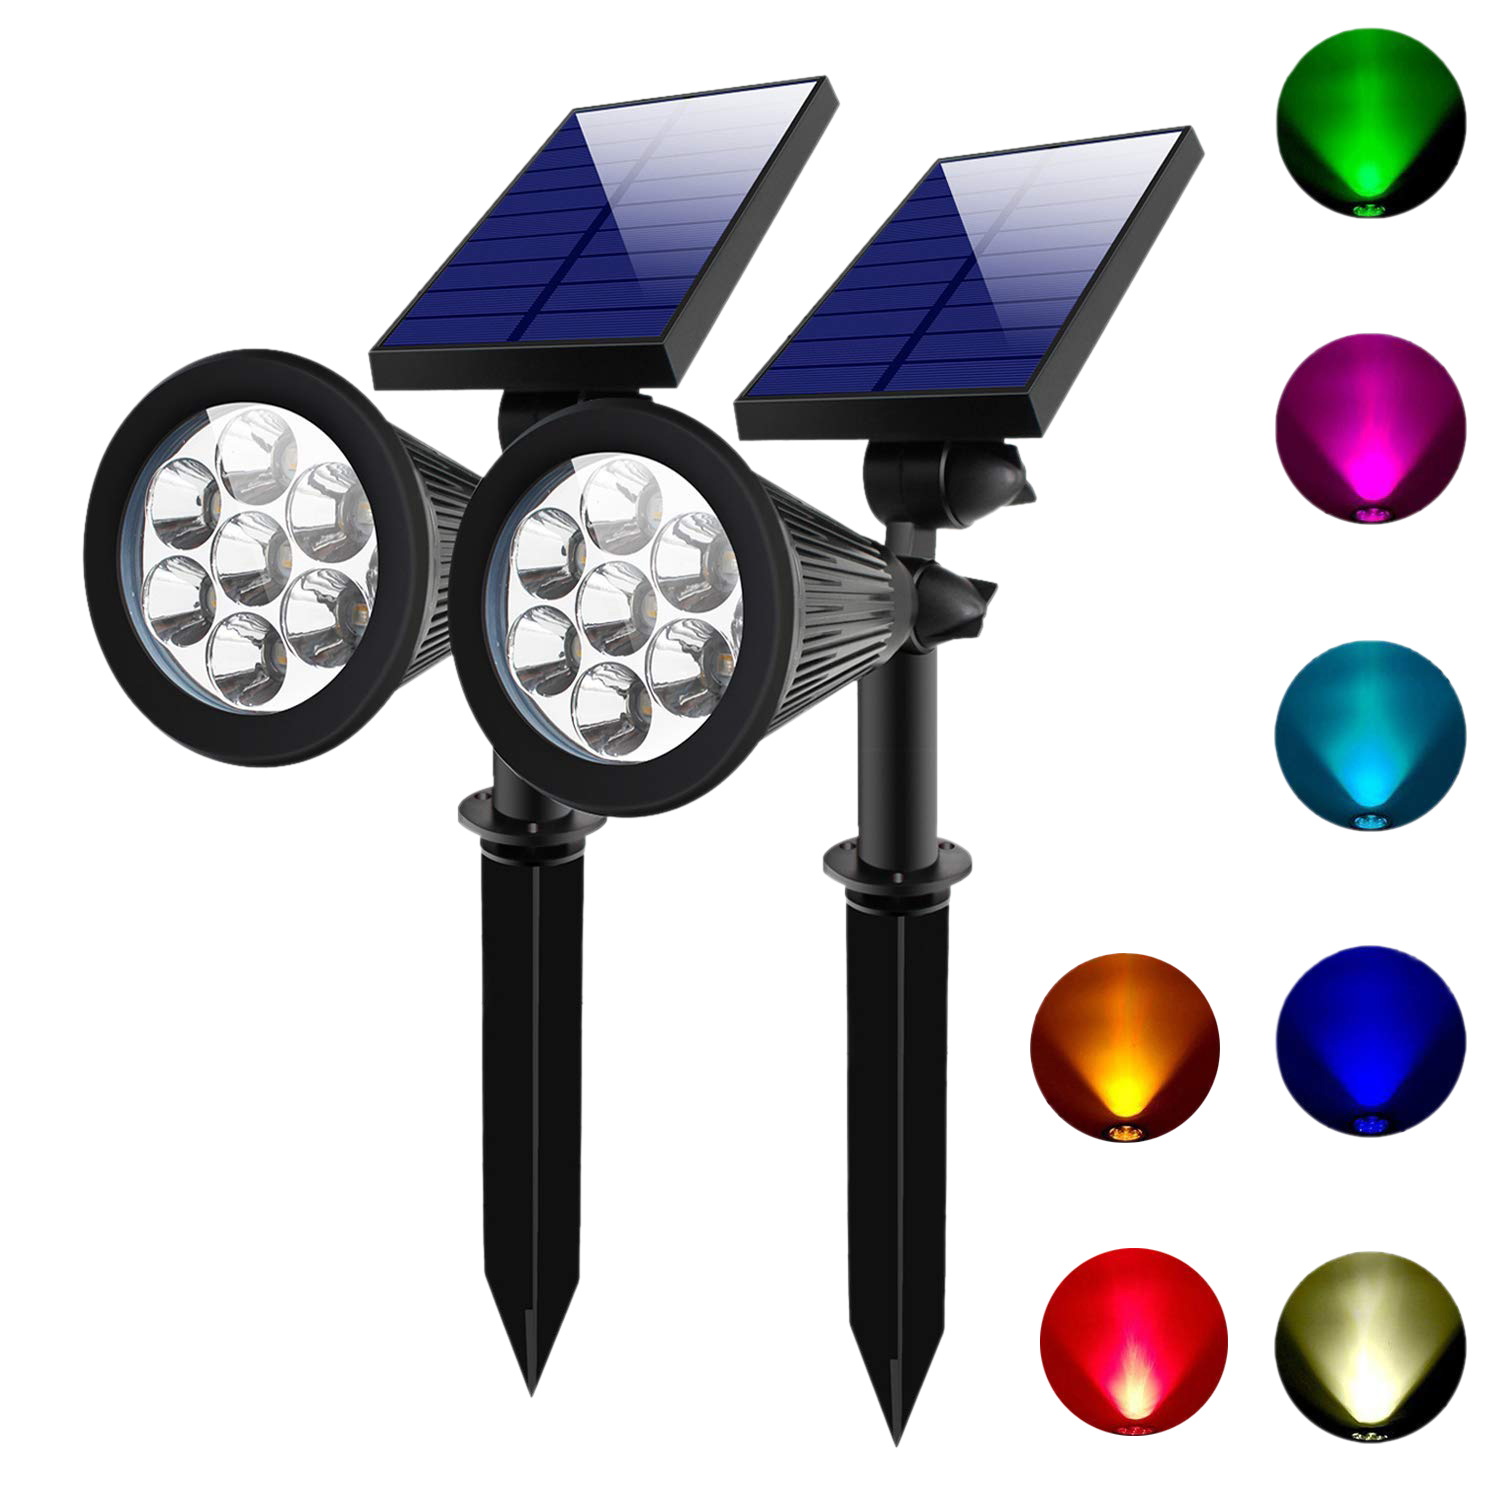 Hot 2 SETS 7 LED Solar Spotlights Outdoor Solar Lights Waterproof Color Spot Lights For Garden Landscape Spotlights Dark Retail